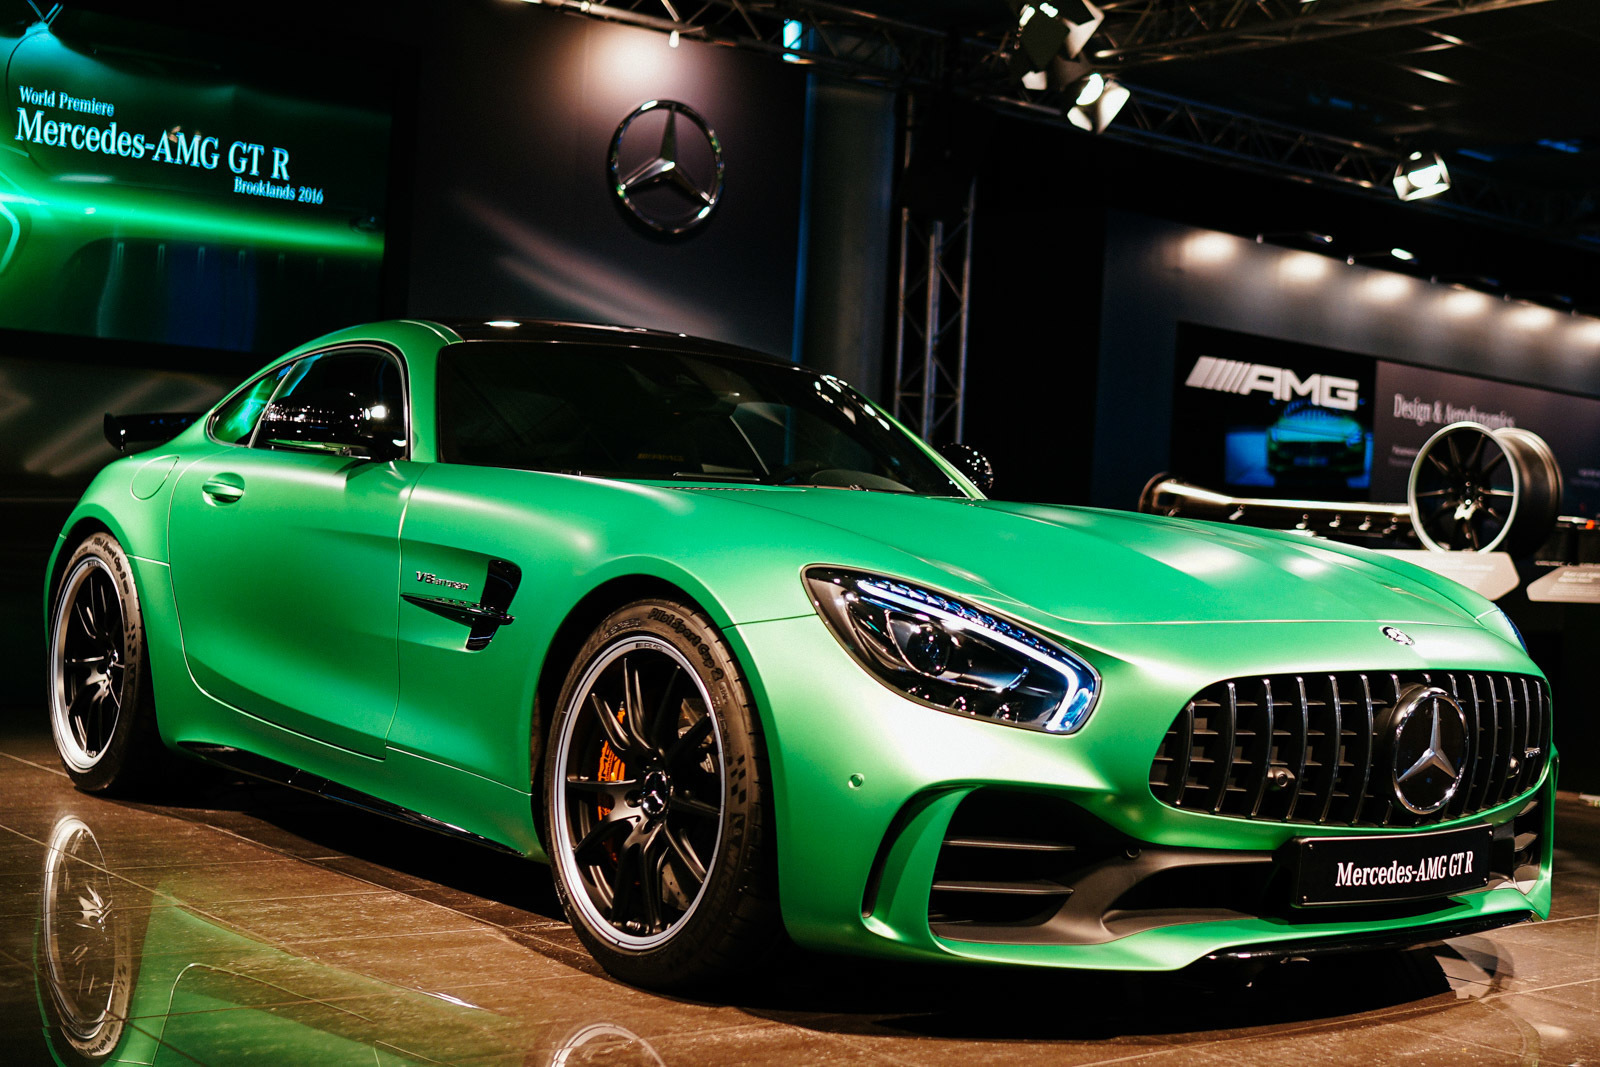 mercedes amg gt r shows audi q3 prototype who 39 s boss. Black Bedroom Furniture Sets. Home Design Ideas